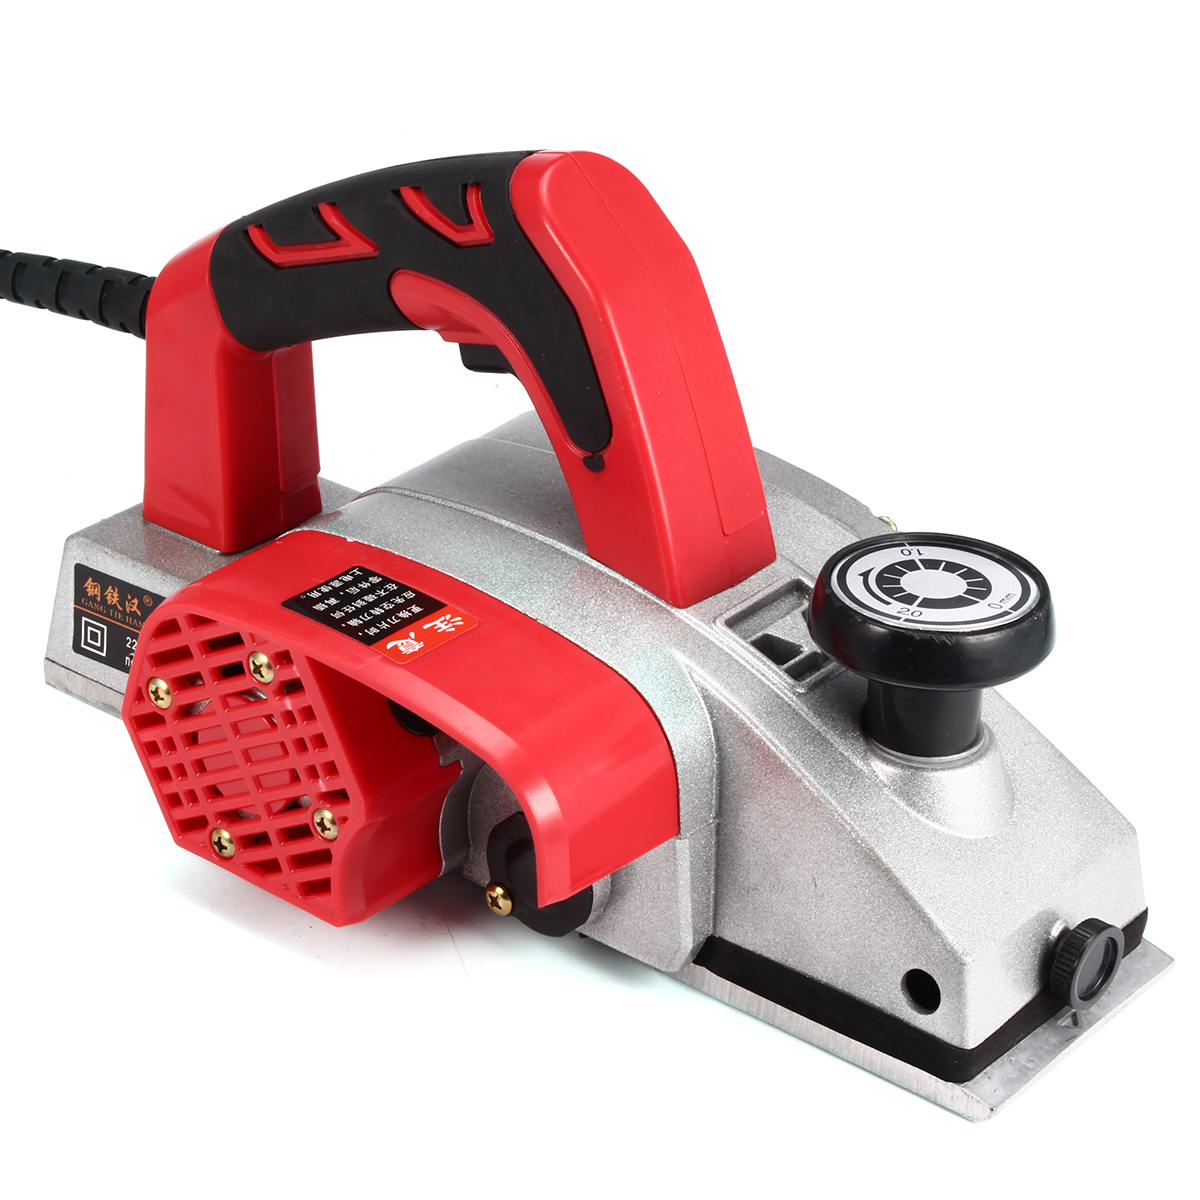 220V 1300W Electric Wood Planer Sander Power Planner Hand Planer